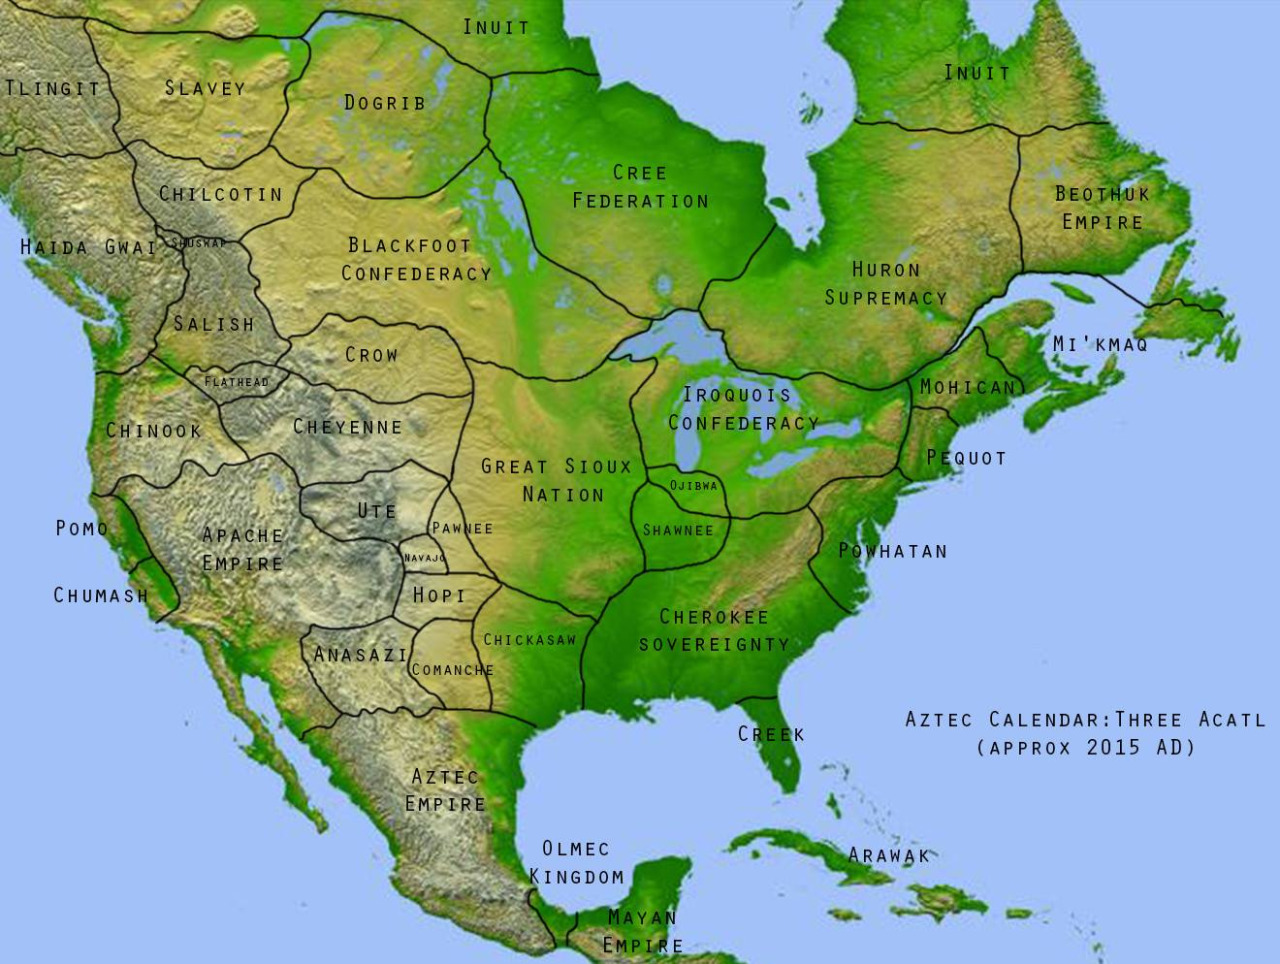 Imaginary map of Alternate History Non-Columbian North America